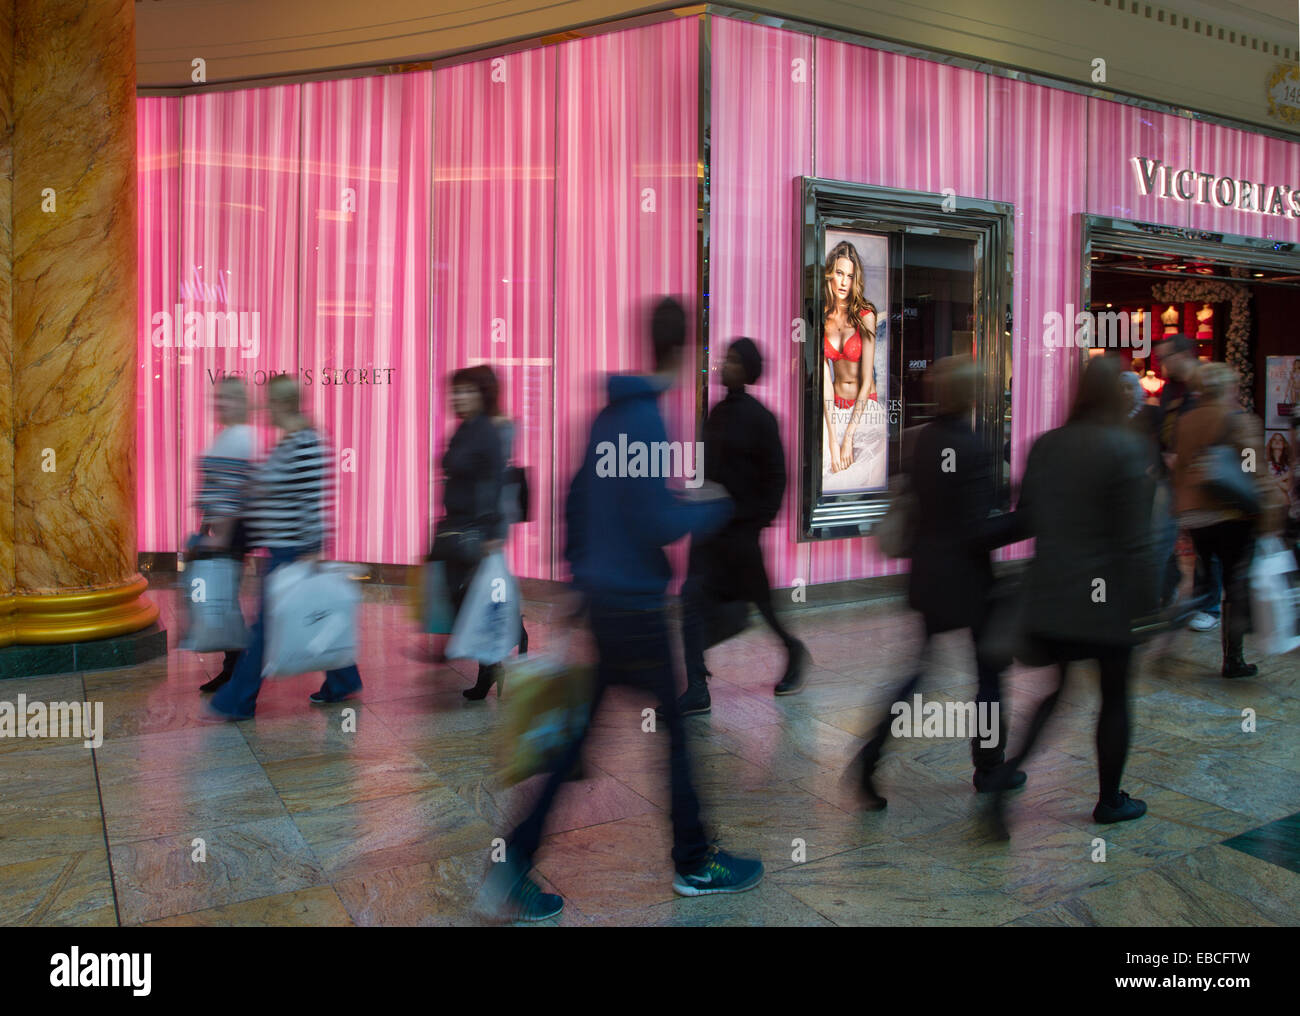 Trafford Centre shopping centre in Manchester. Victoria's Secret ...